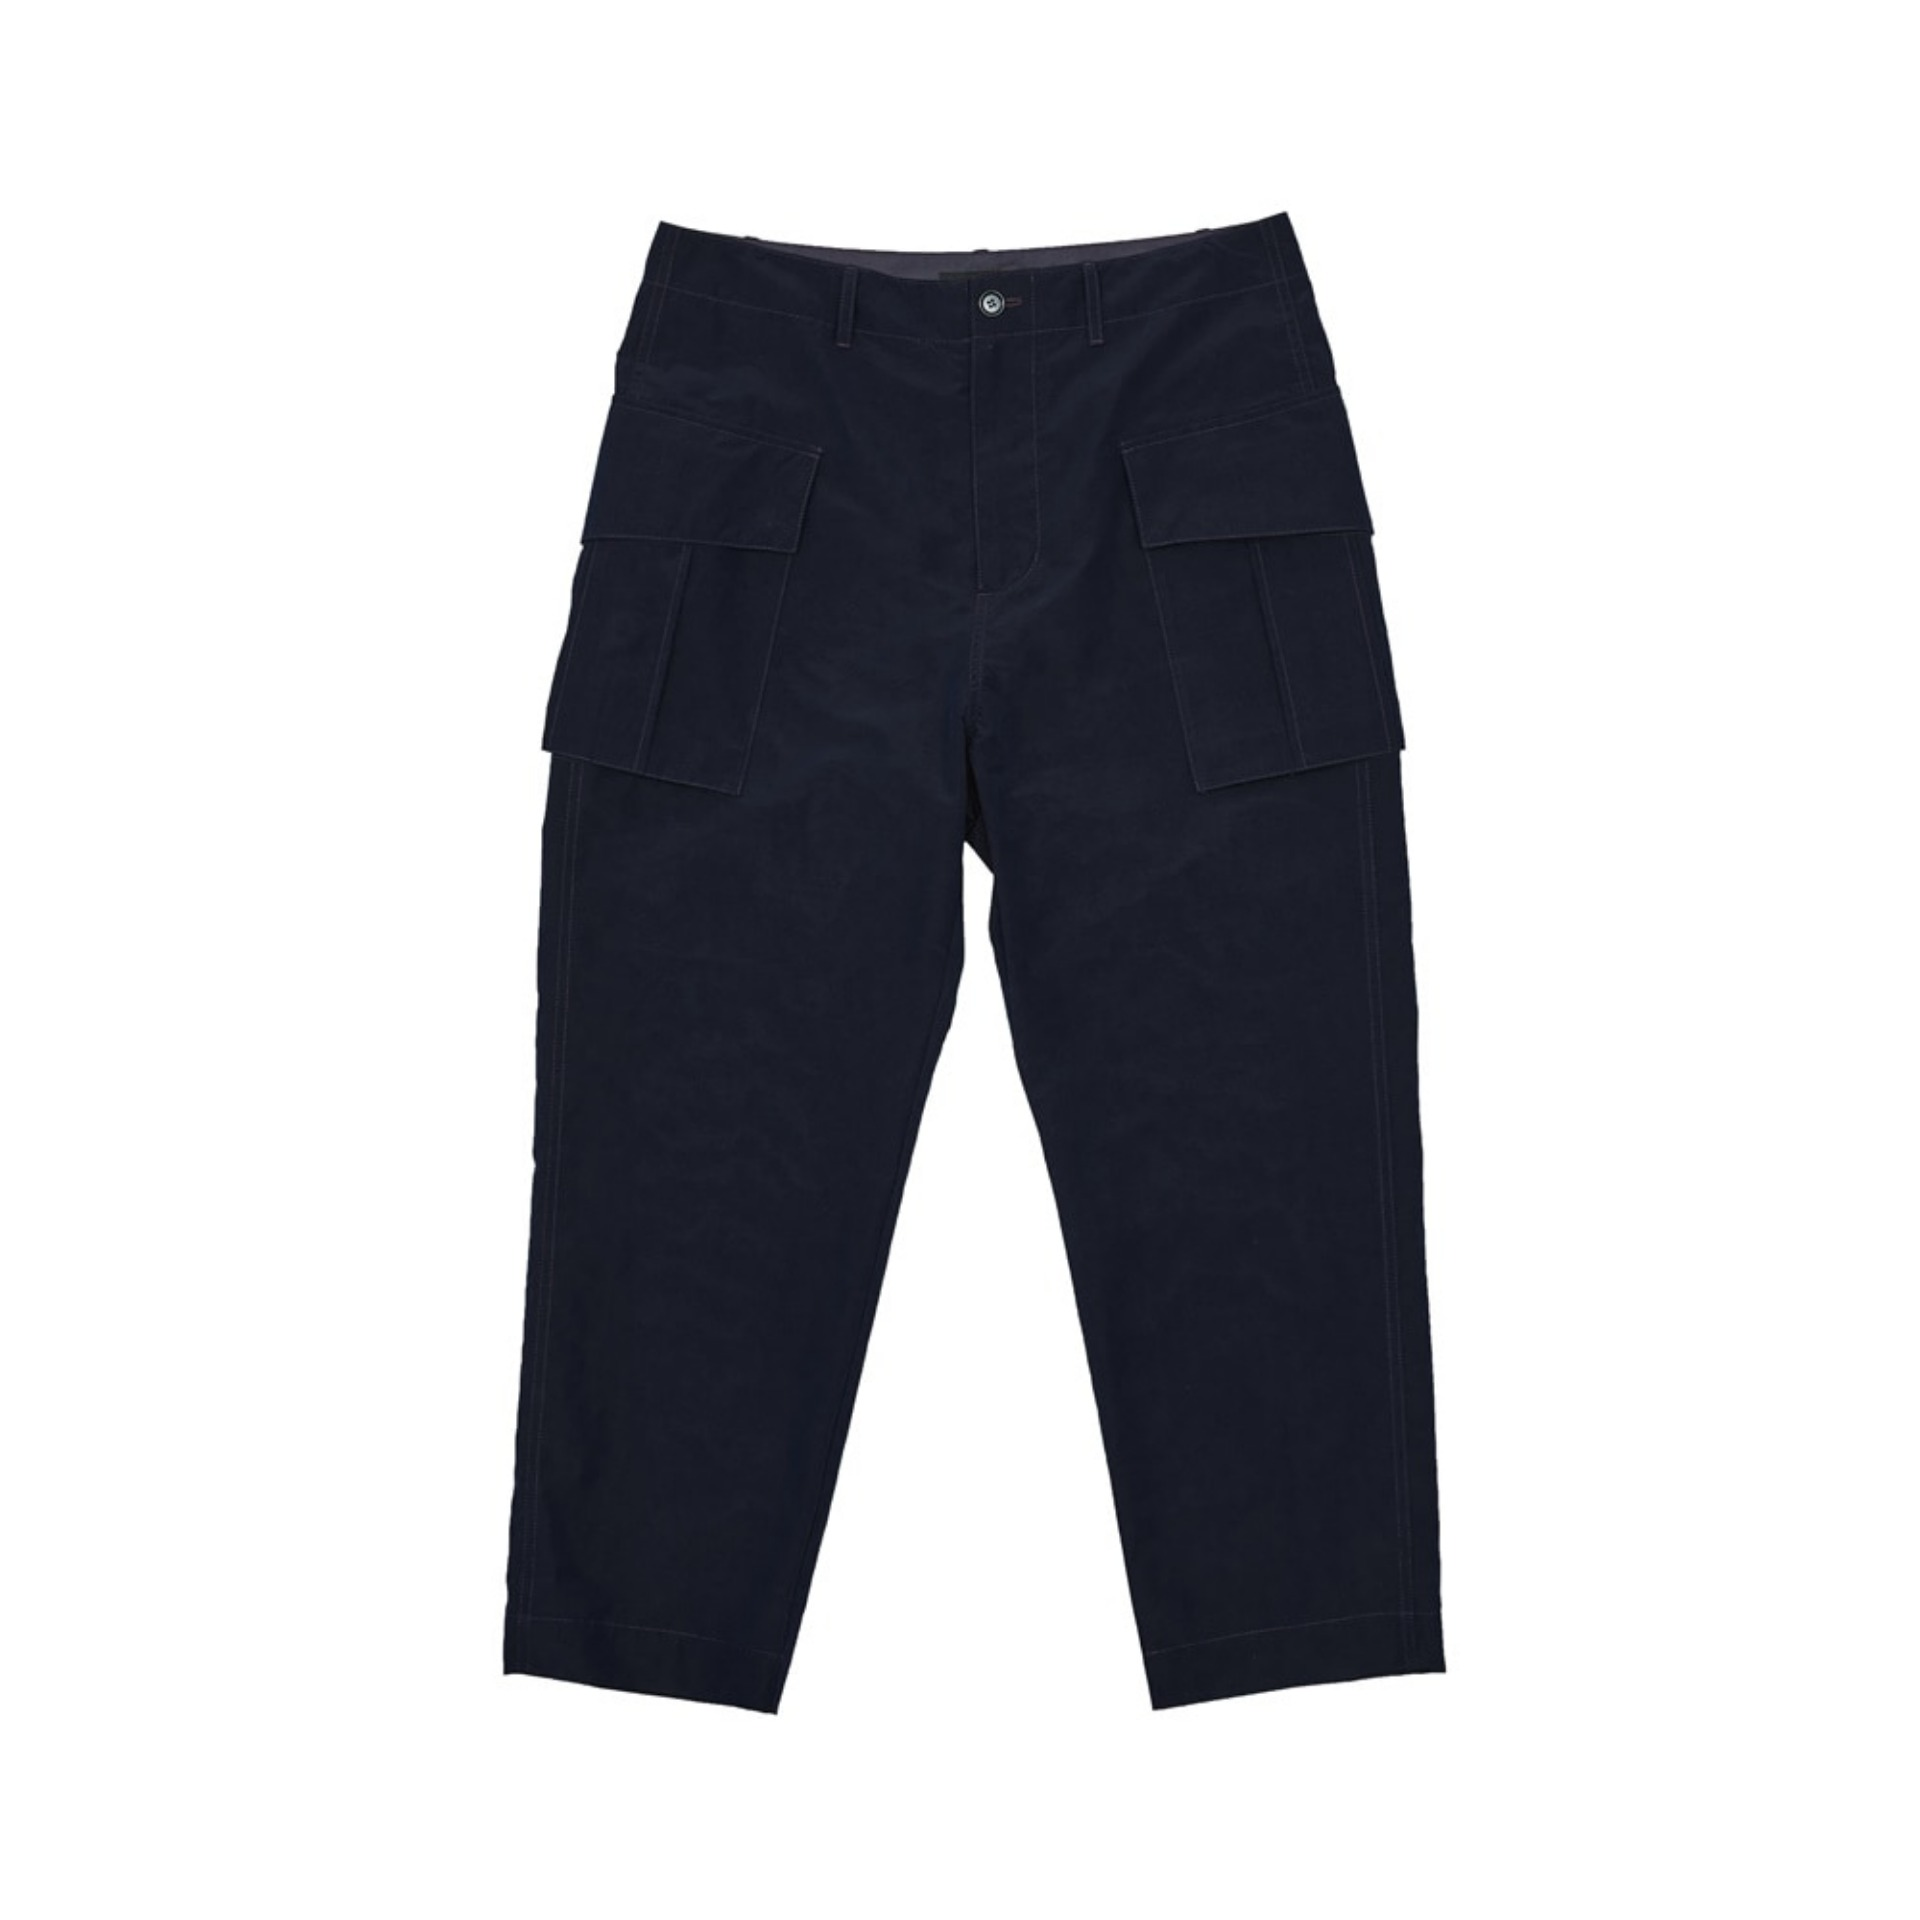 RIPSTOP P44 PANTS (NAVY)